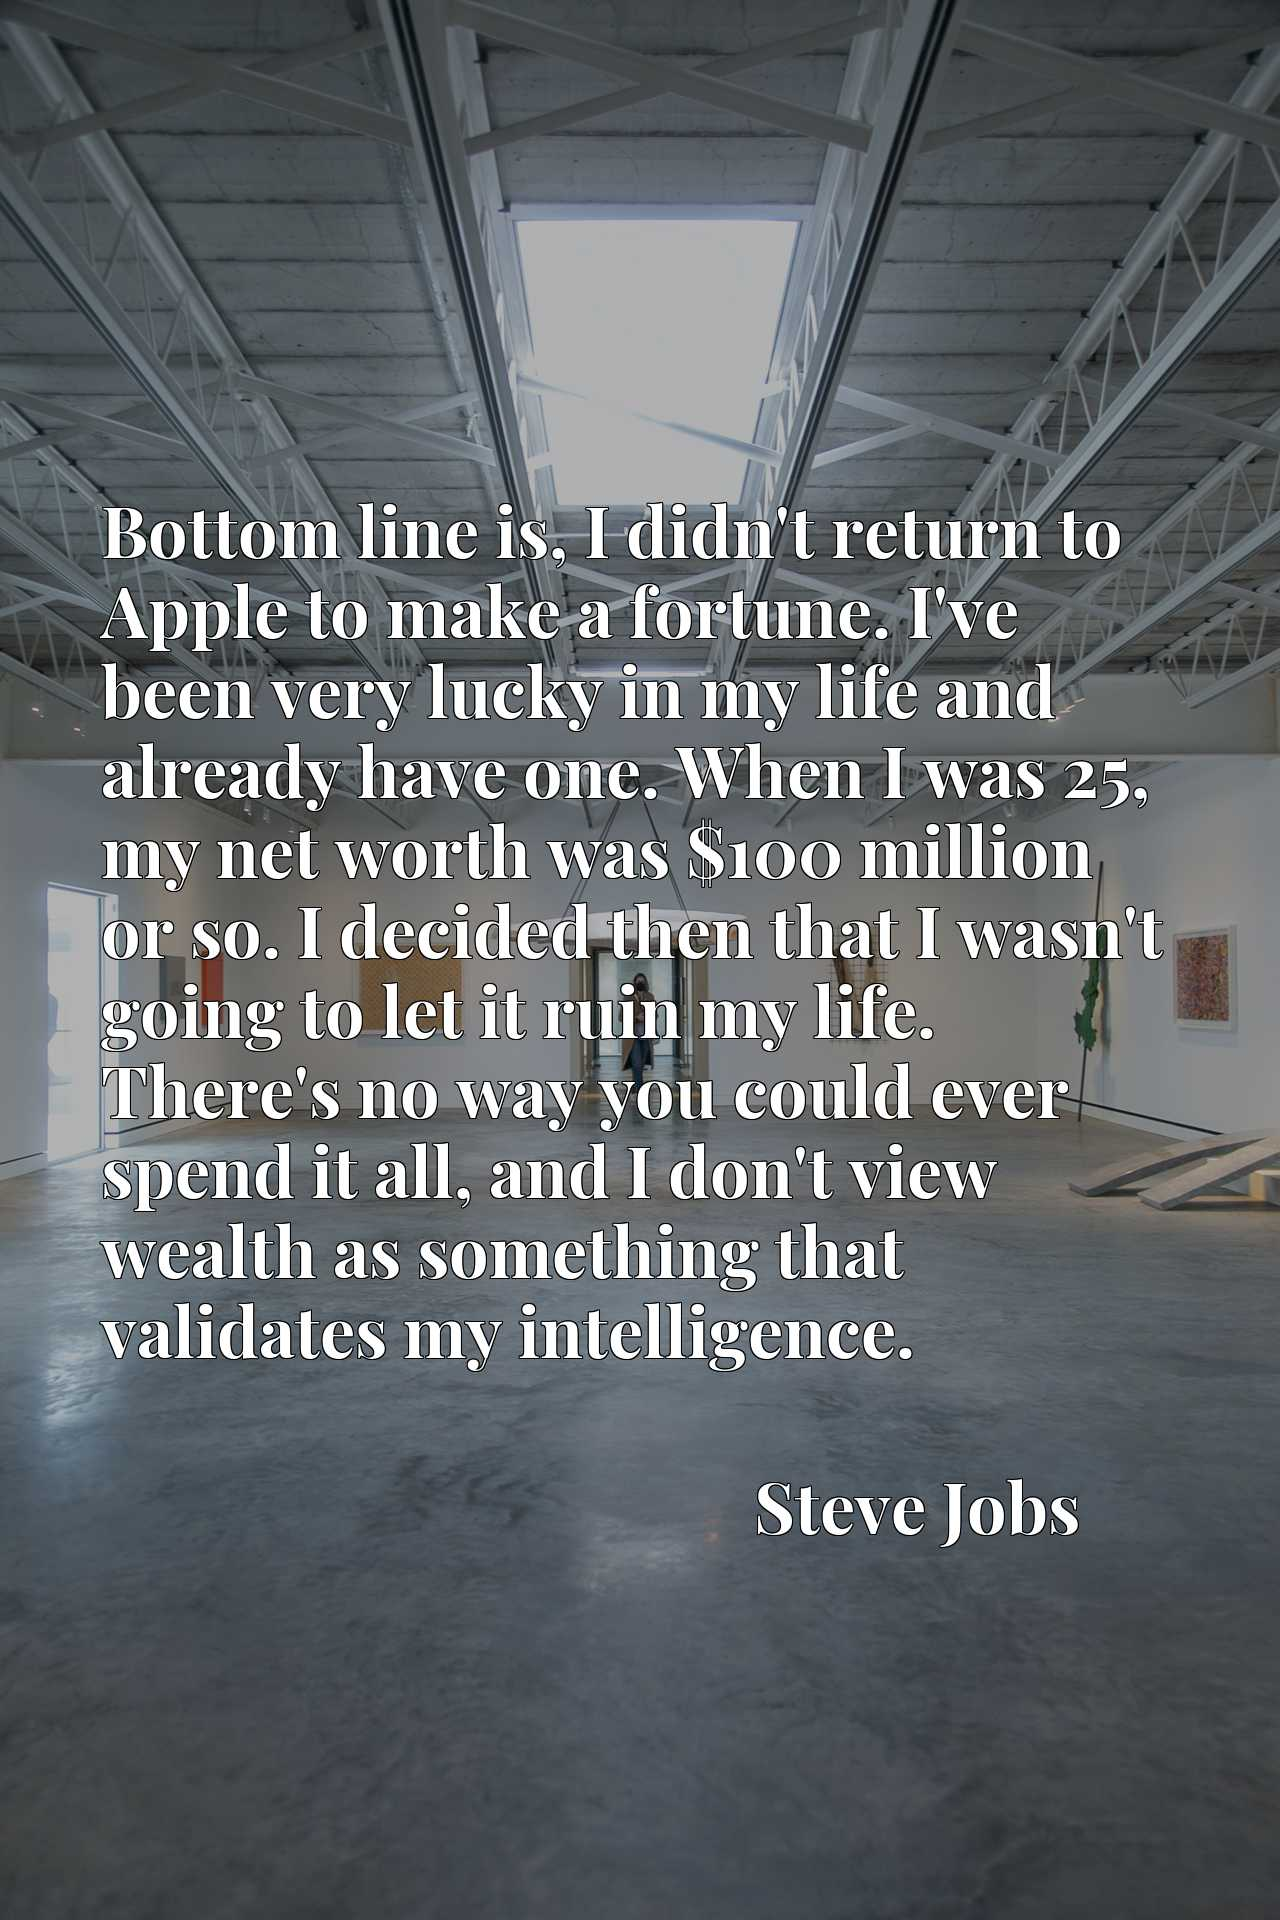 Bottom line is, I didn't return to Apple to make a fortune. I've been very lucky in my life and already have one. When I was 25, my net worth was $100 million or so. I decided then that I wasn't going to let it ruin my life. There's no way you could ever spend it all, and I don't view wealth as something that validates my intelligence.